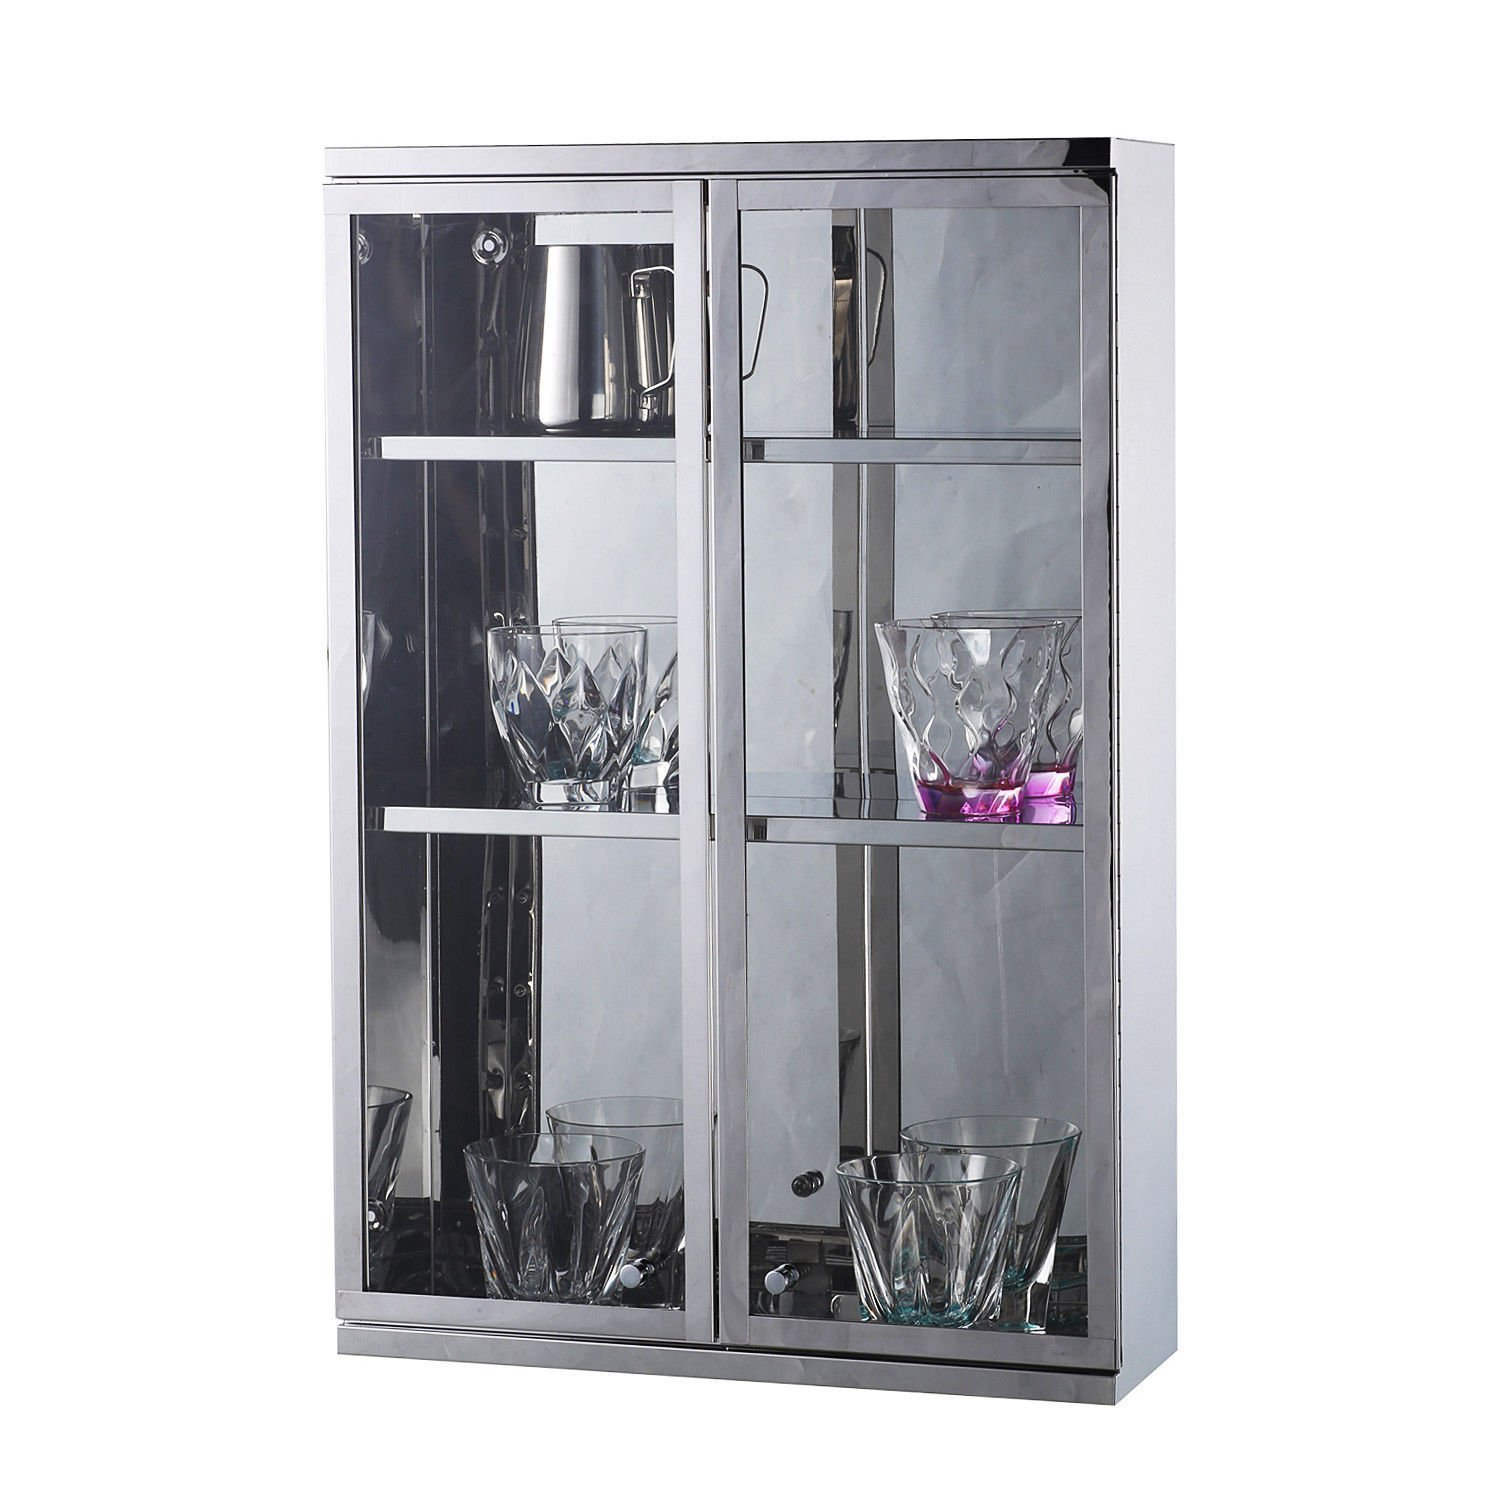 "GHP Home 23.6"" L×15.7"" W×5.1"" T Silver Stainless Steel Wall Mounted Bathroom Cabinet"